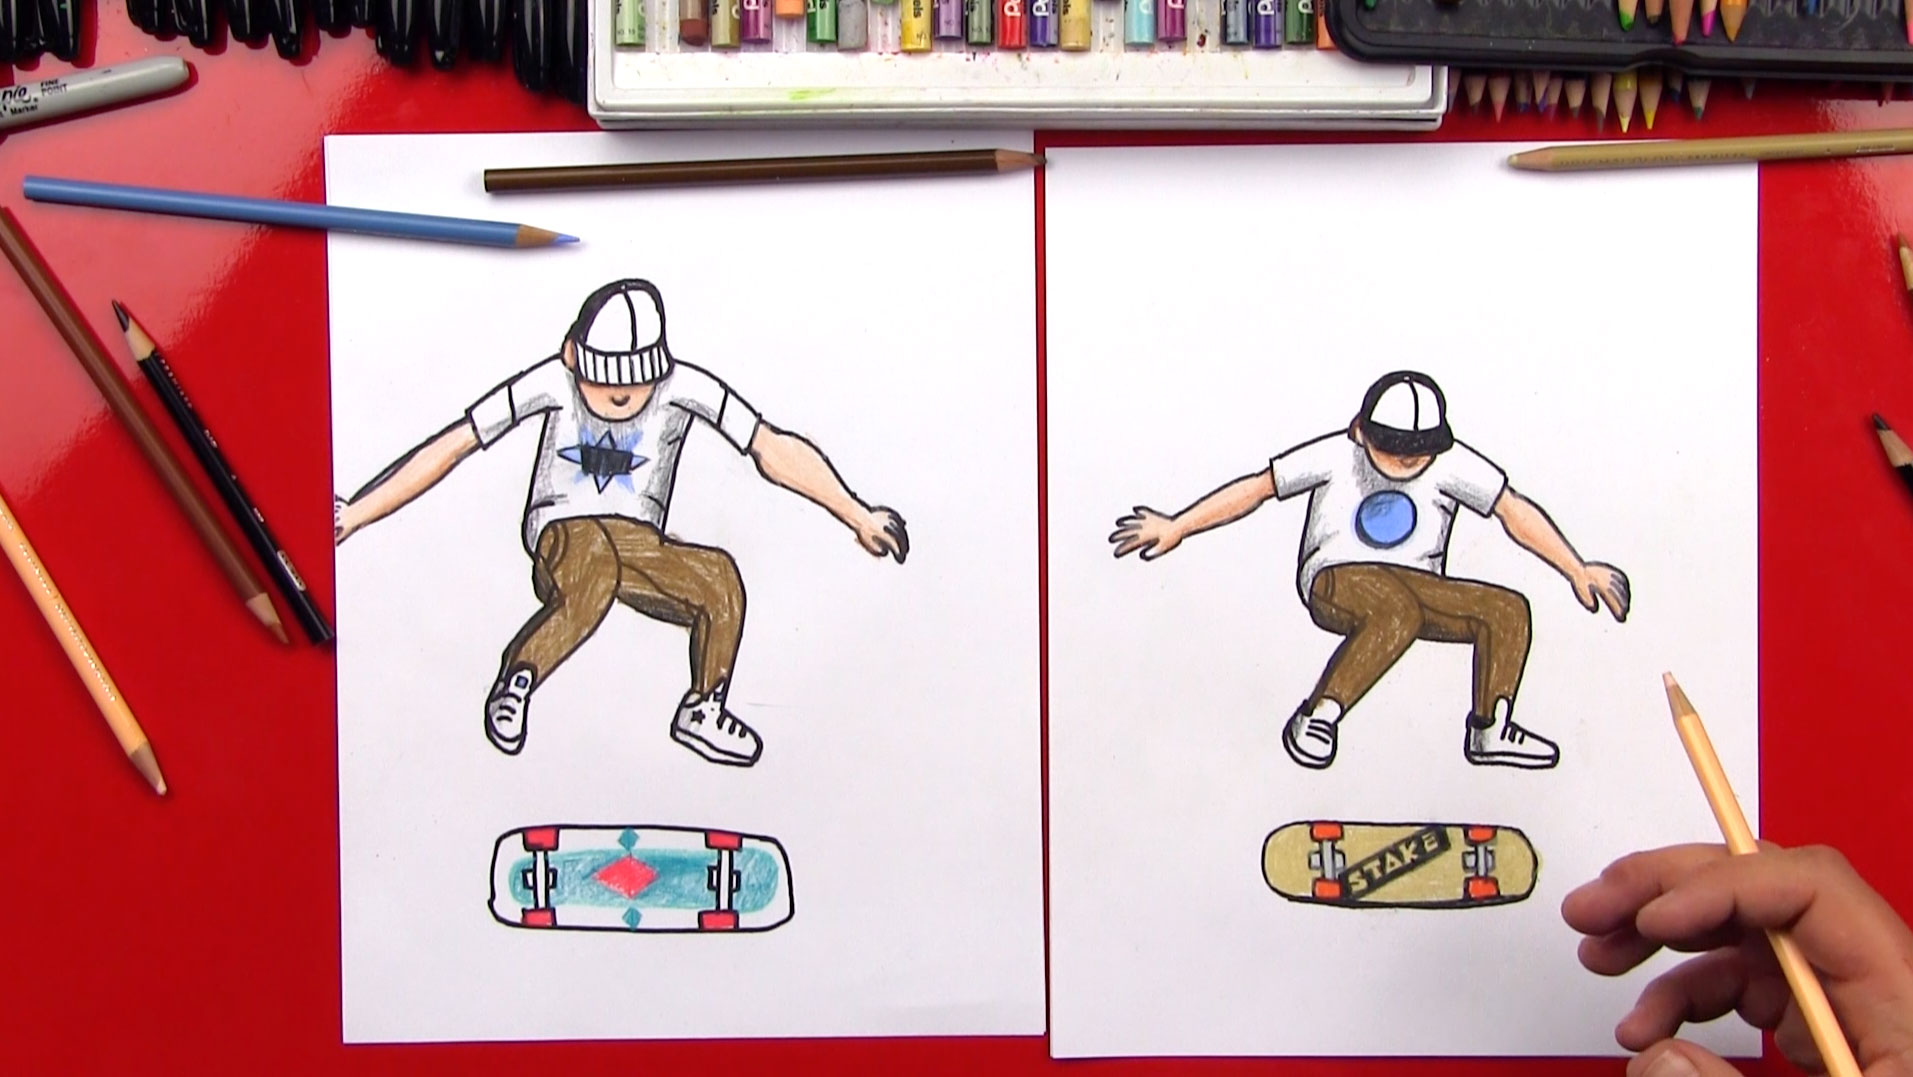 How To Draw A Skateboarder Doing Kickflip